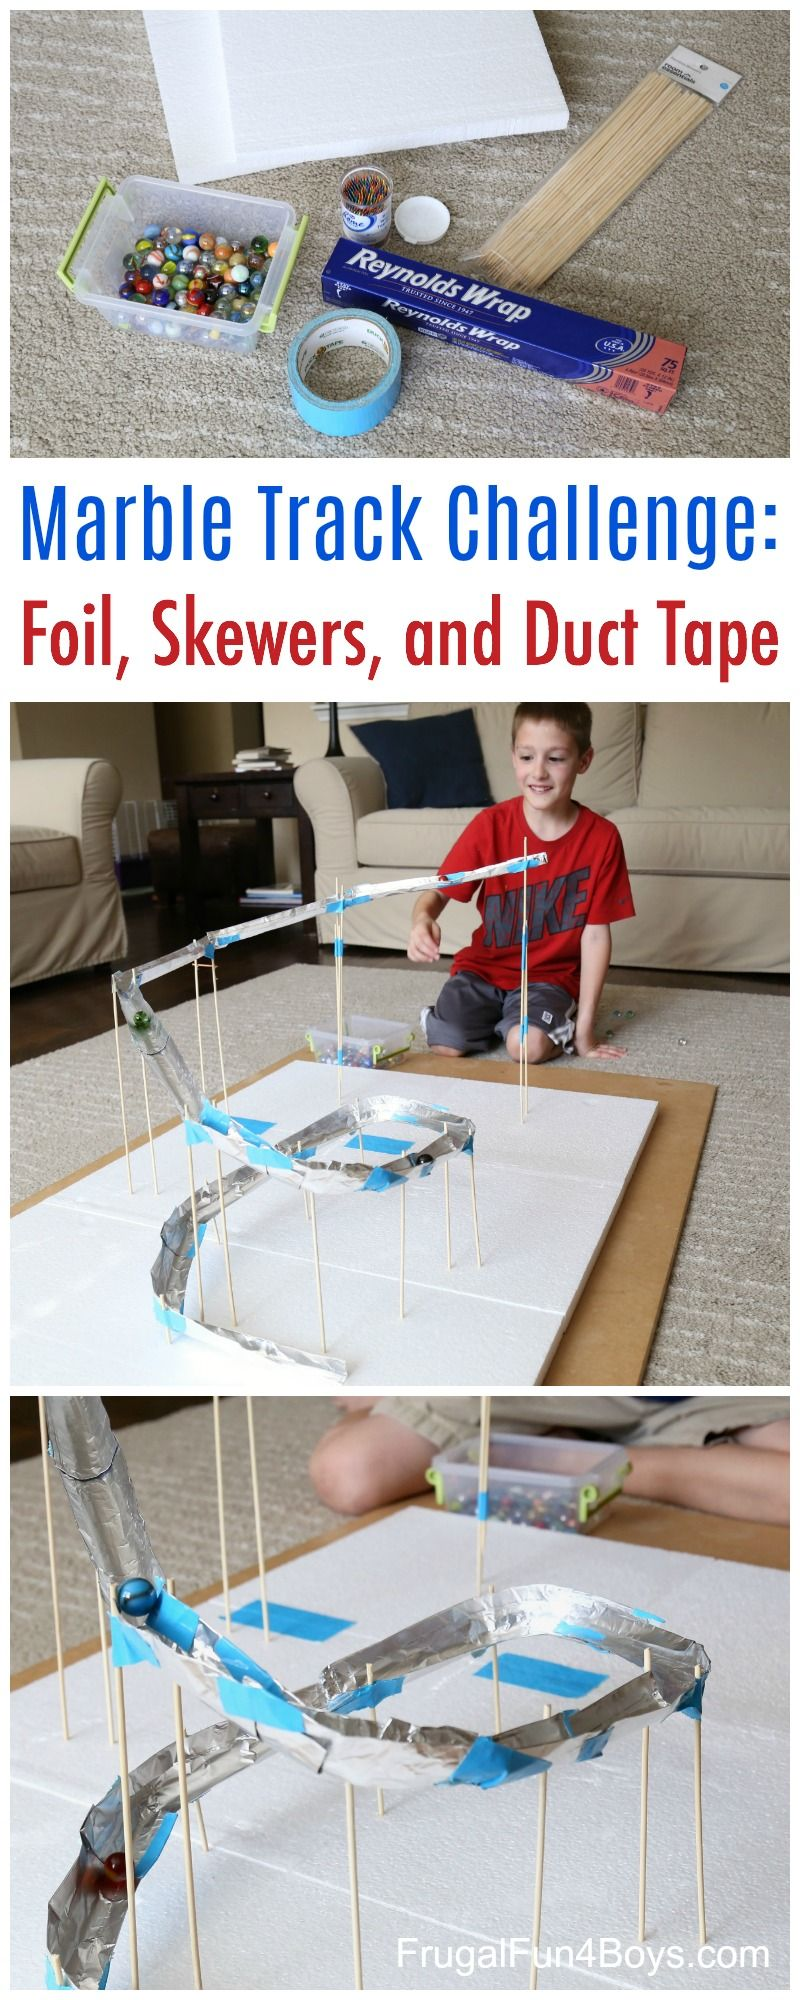 Stem Challenge For Kids Build A Marble Track With Foil Bamboo Skewers And Duct Tape Frugal Fun For Boys And Girls Stem Challenges Marble Tracks Building For Kids